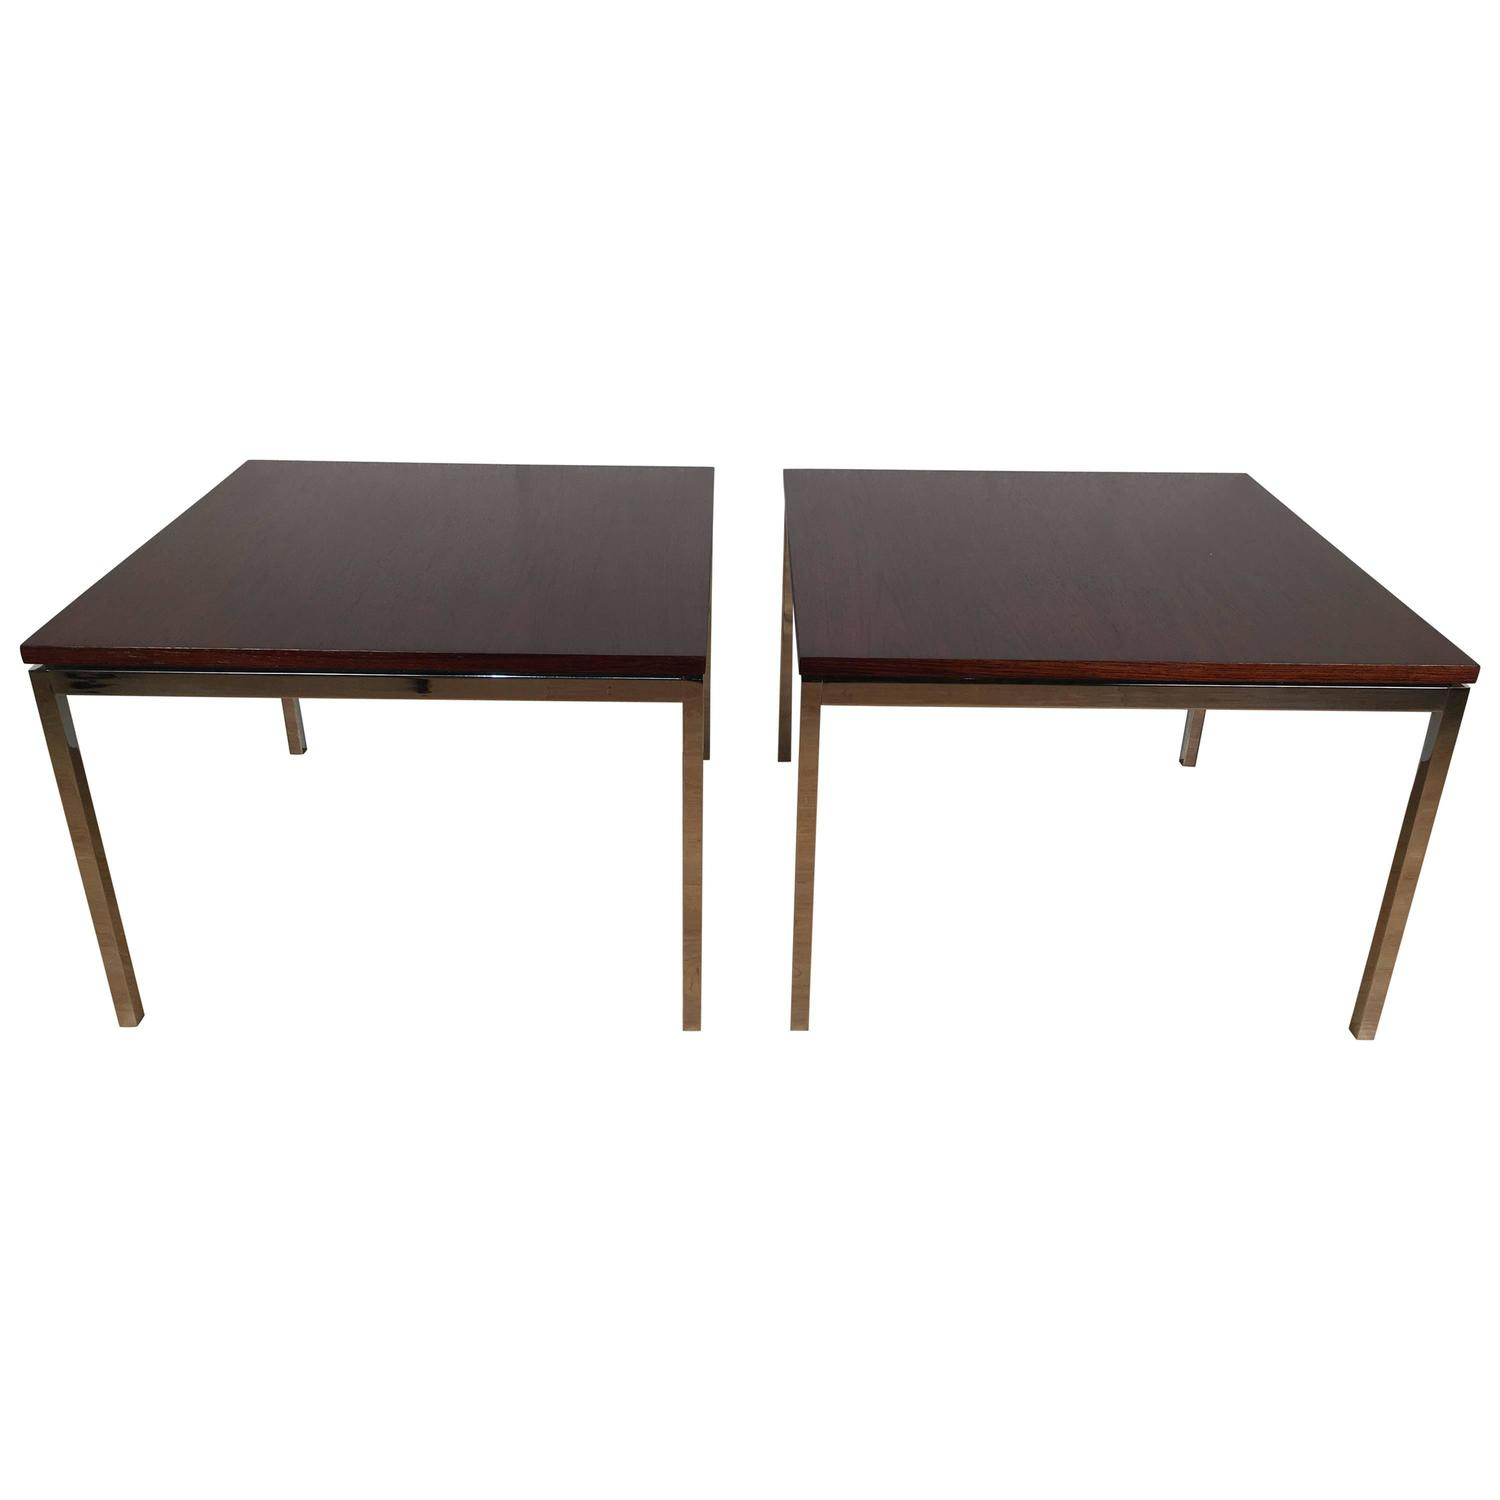 Florence Knoll Coffee Table Rosewood T Angle Iron 1956 For Sale